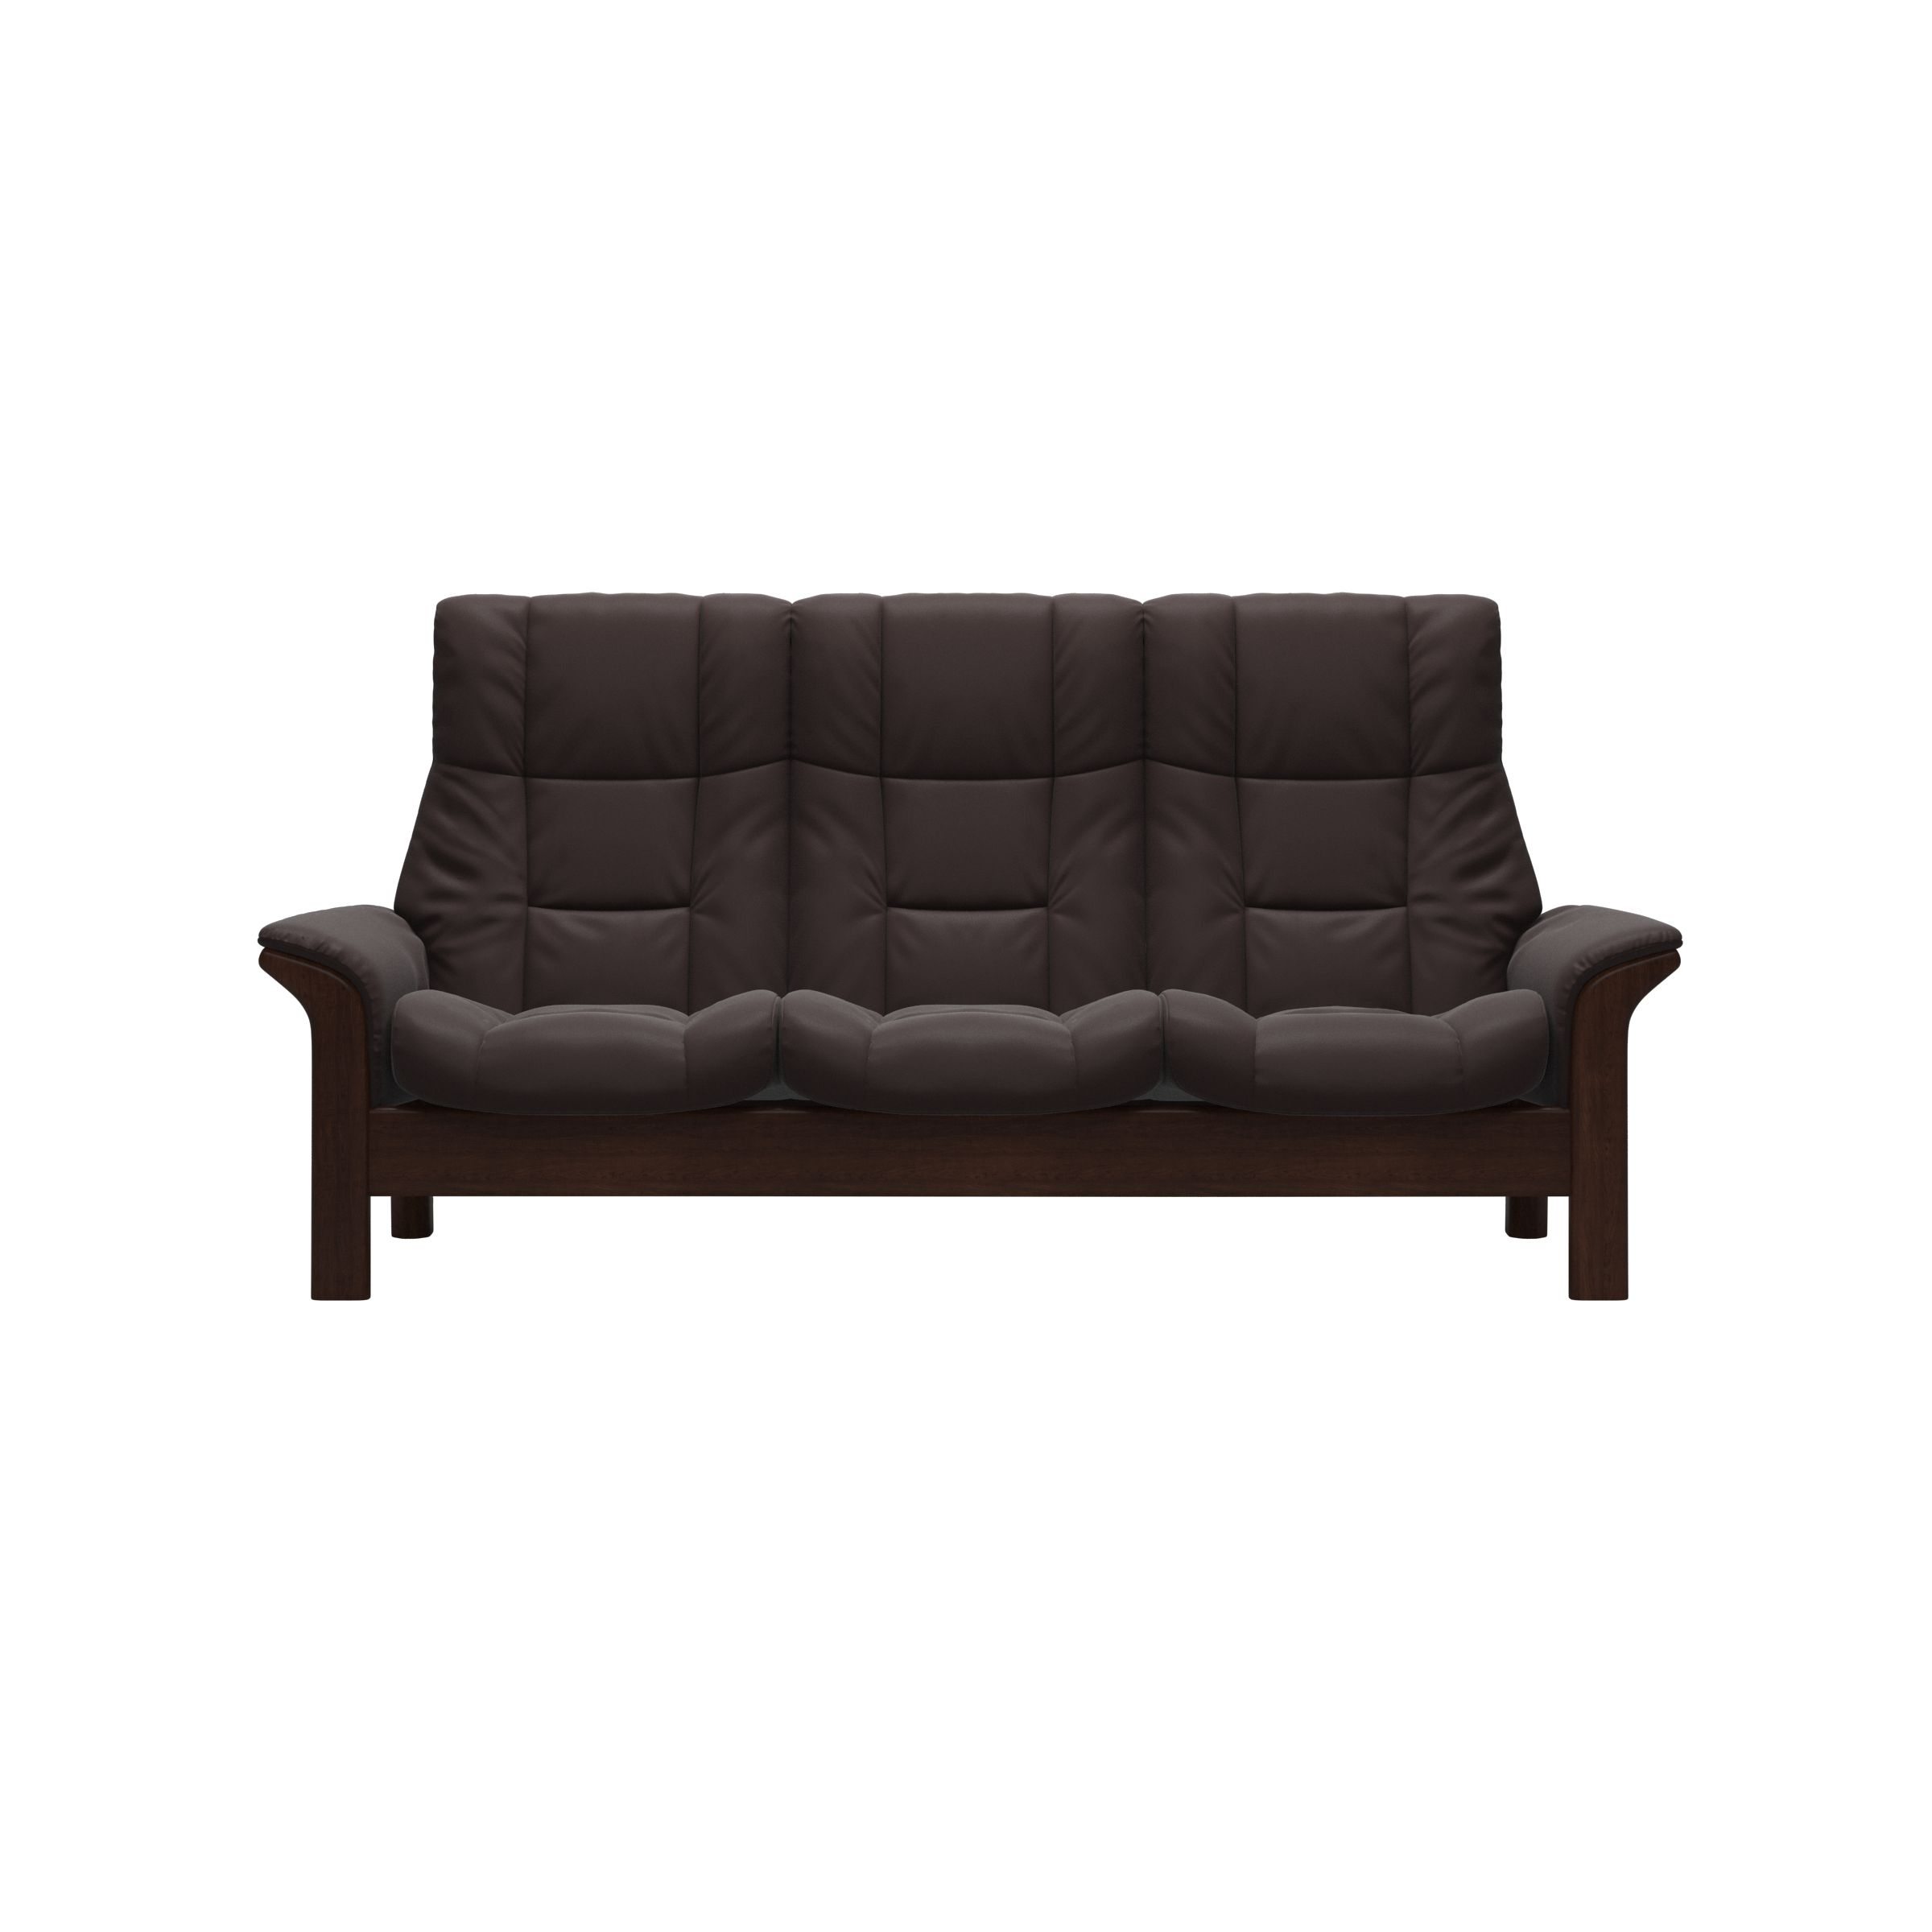 Dahlia 3 Seat Fabric Sofa Stressless Windsor Highback Sofa Design Your Own Sofa Stressless